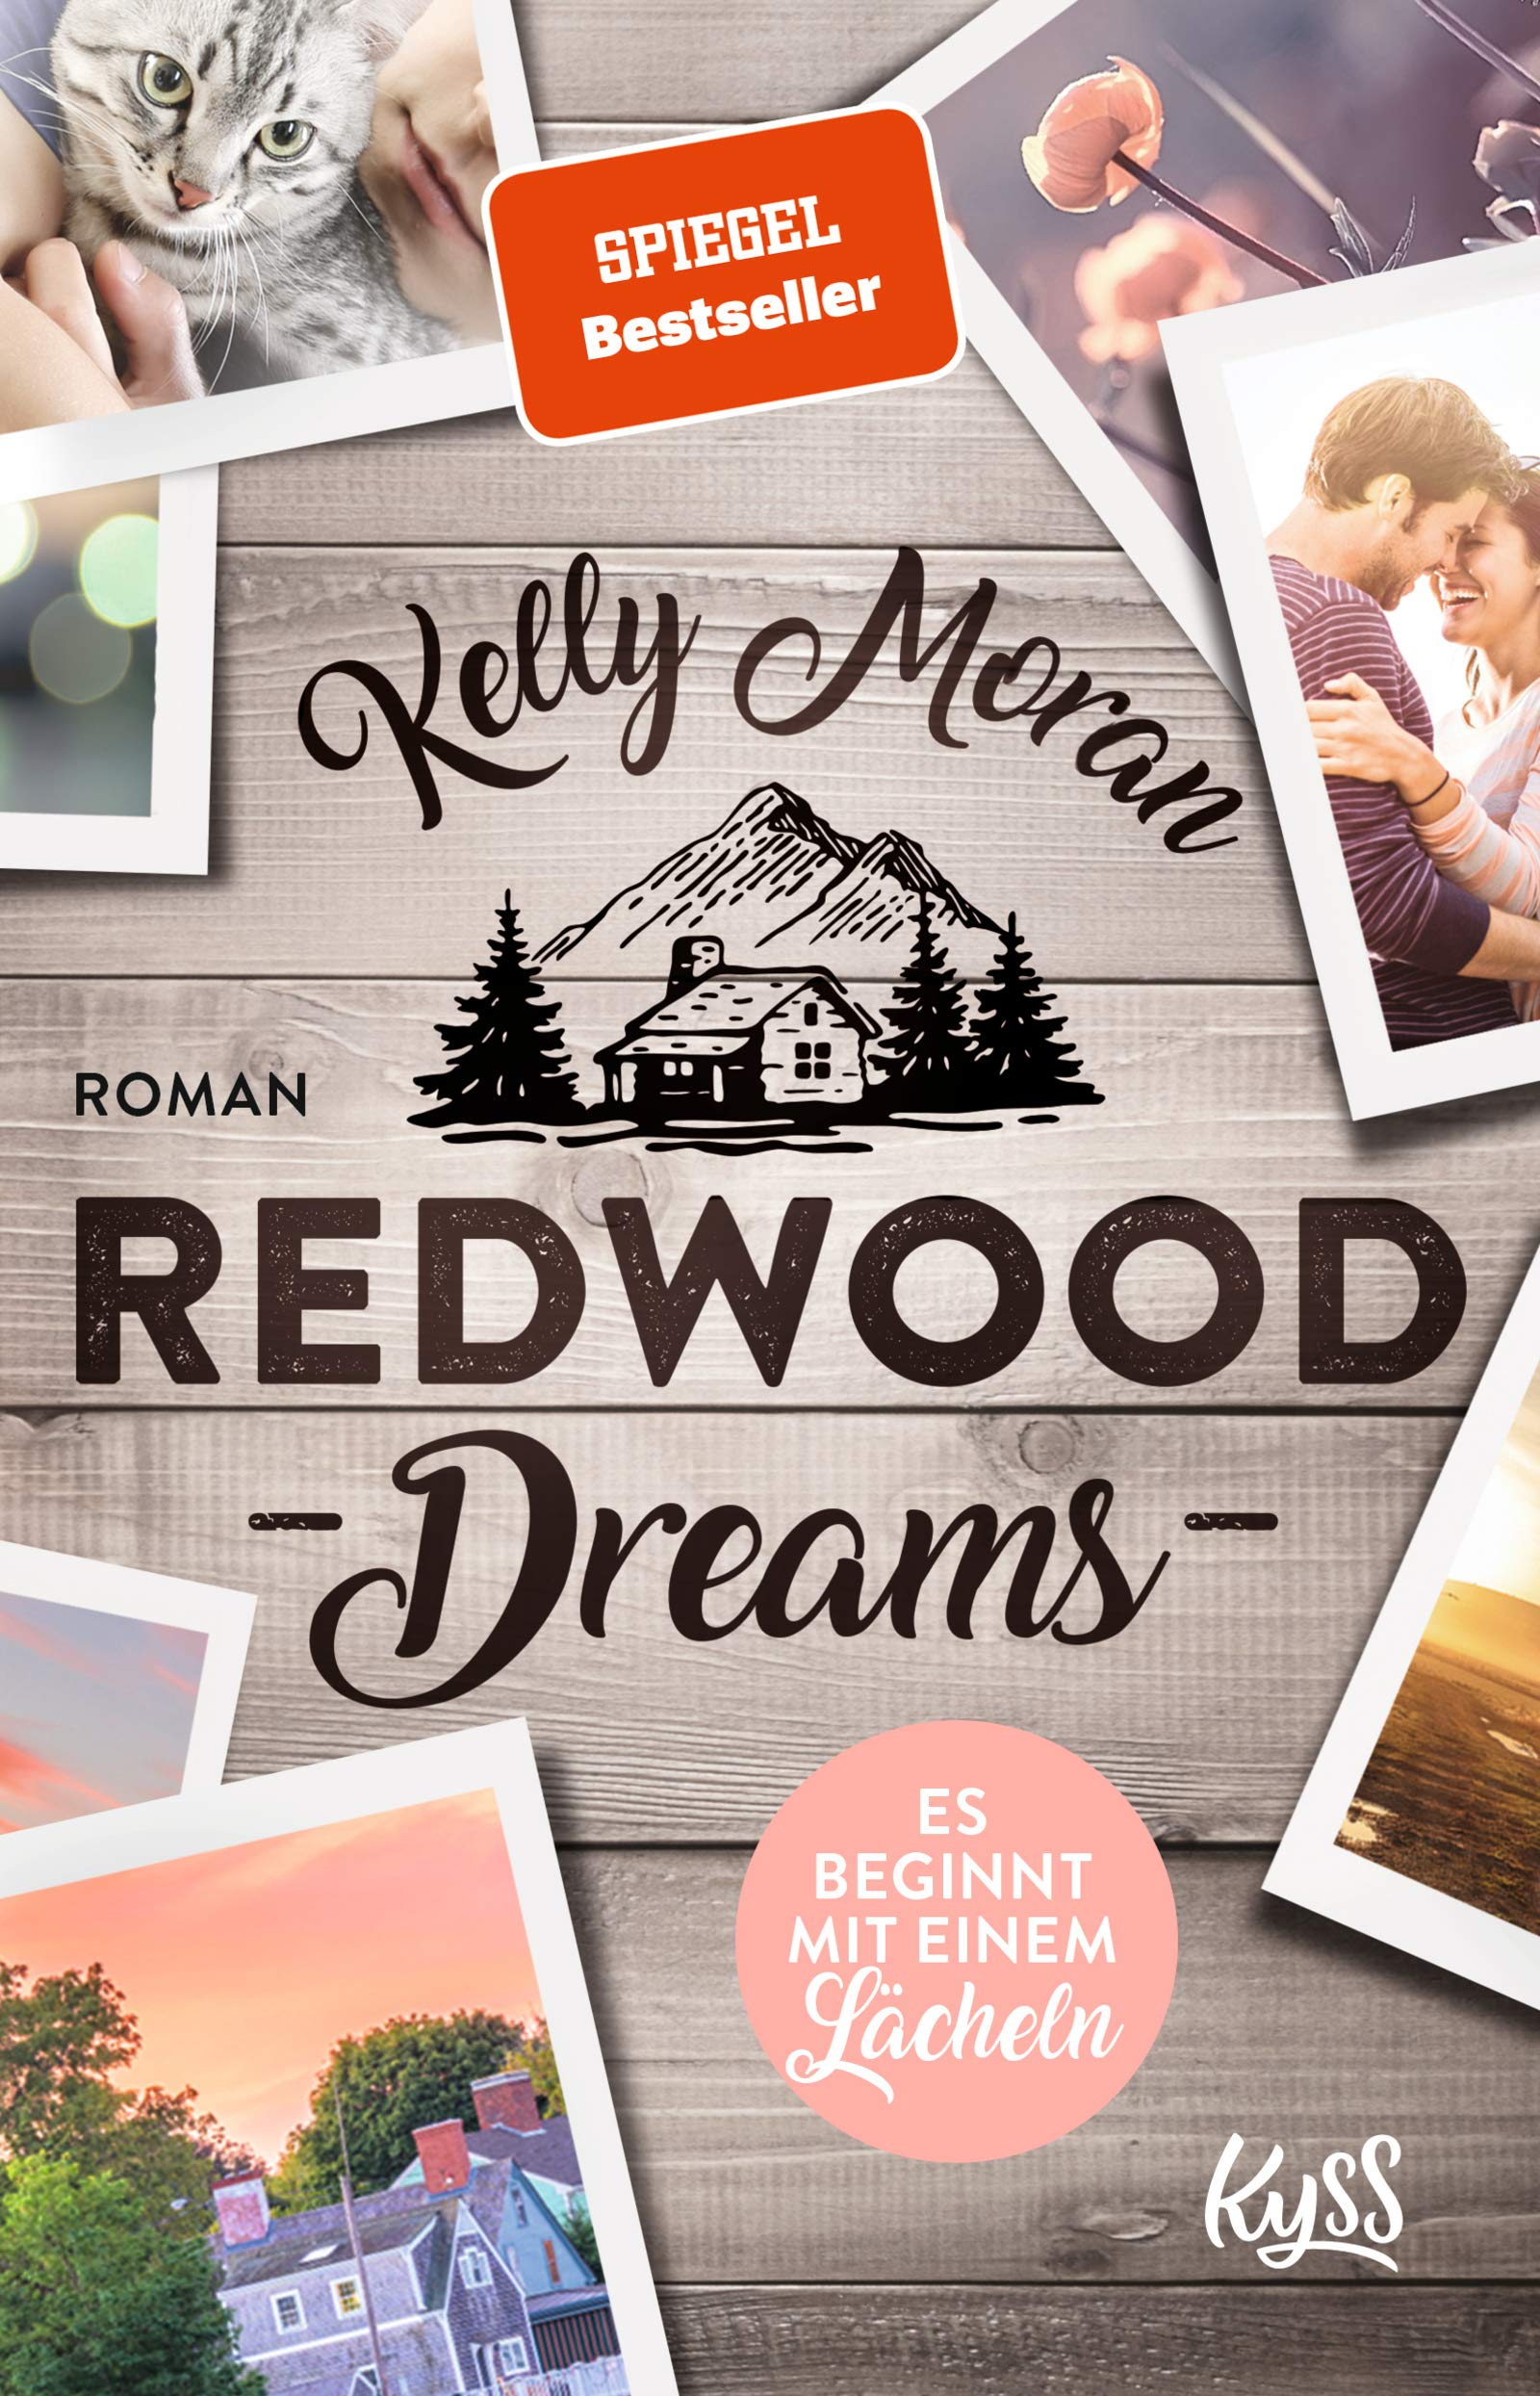 redwood dreams 4